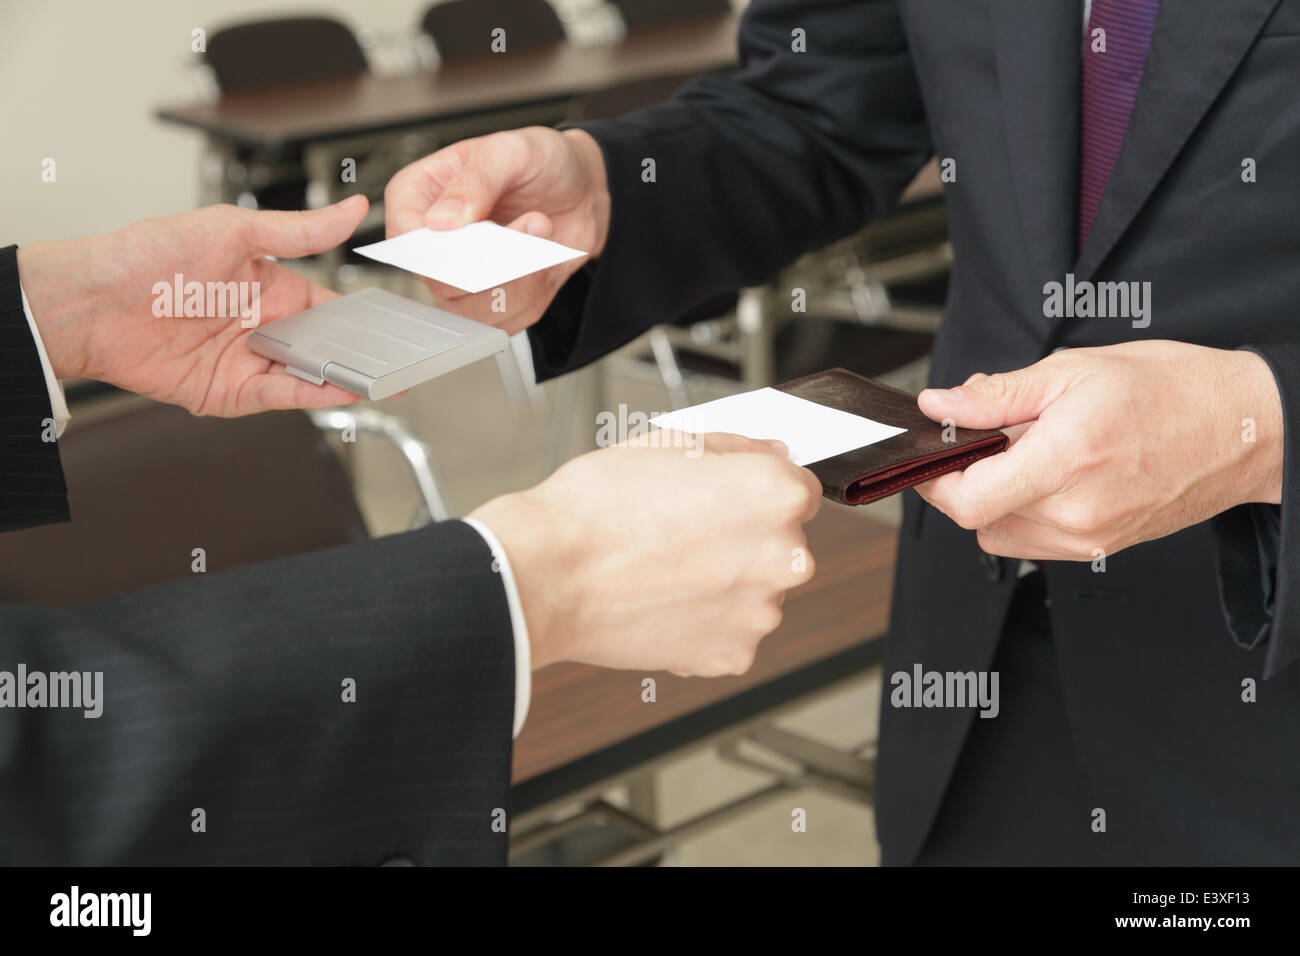 Business Cards Japanese Etiquette Image collections - Card Design ...